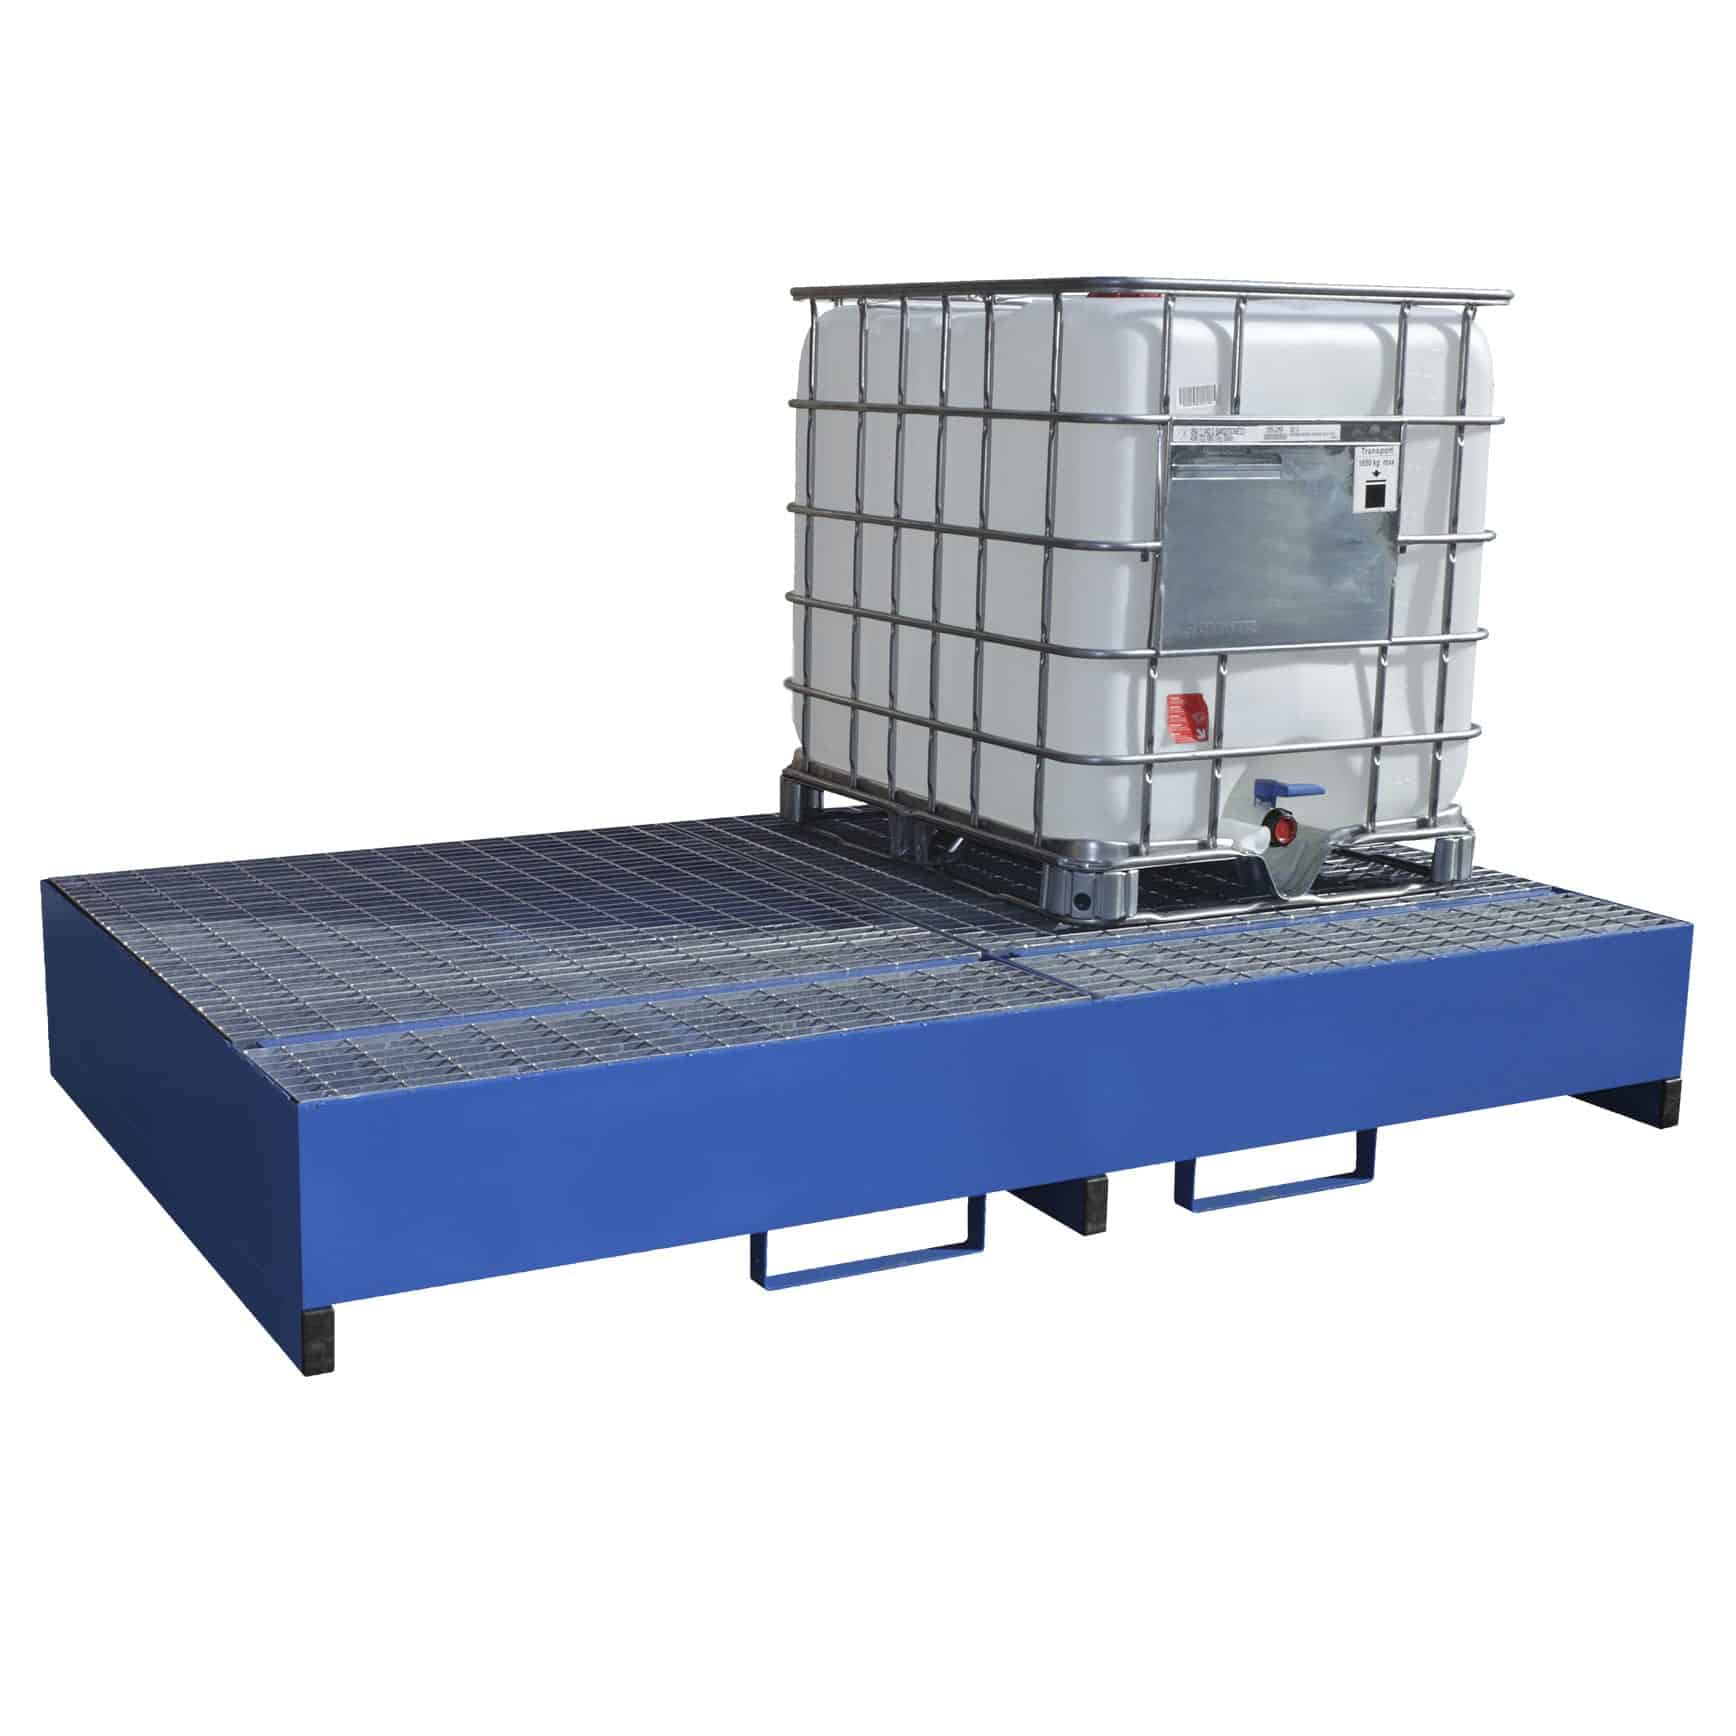 Two IBC Spill Pallet